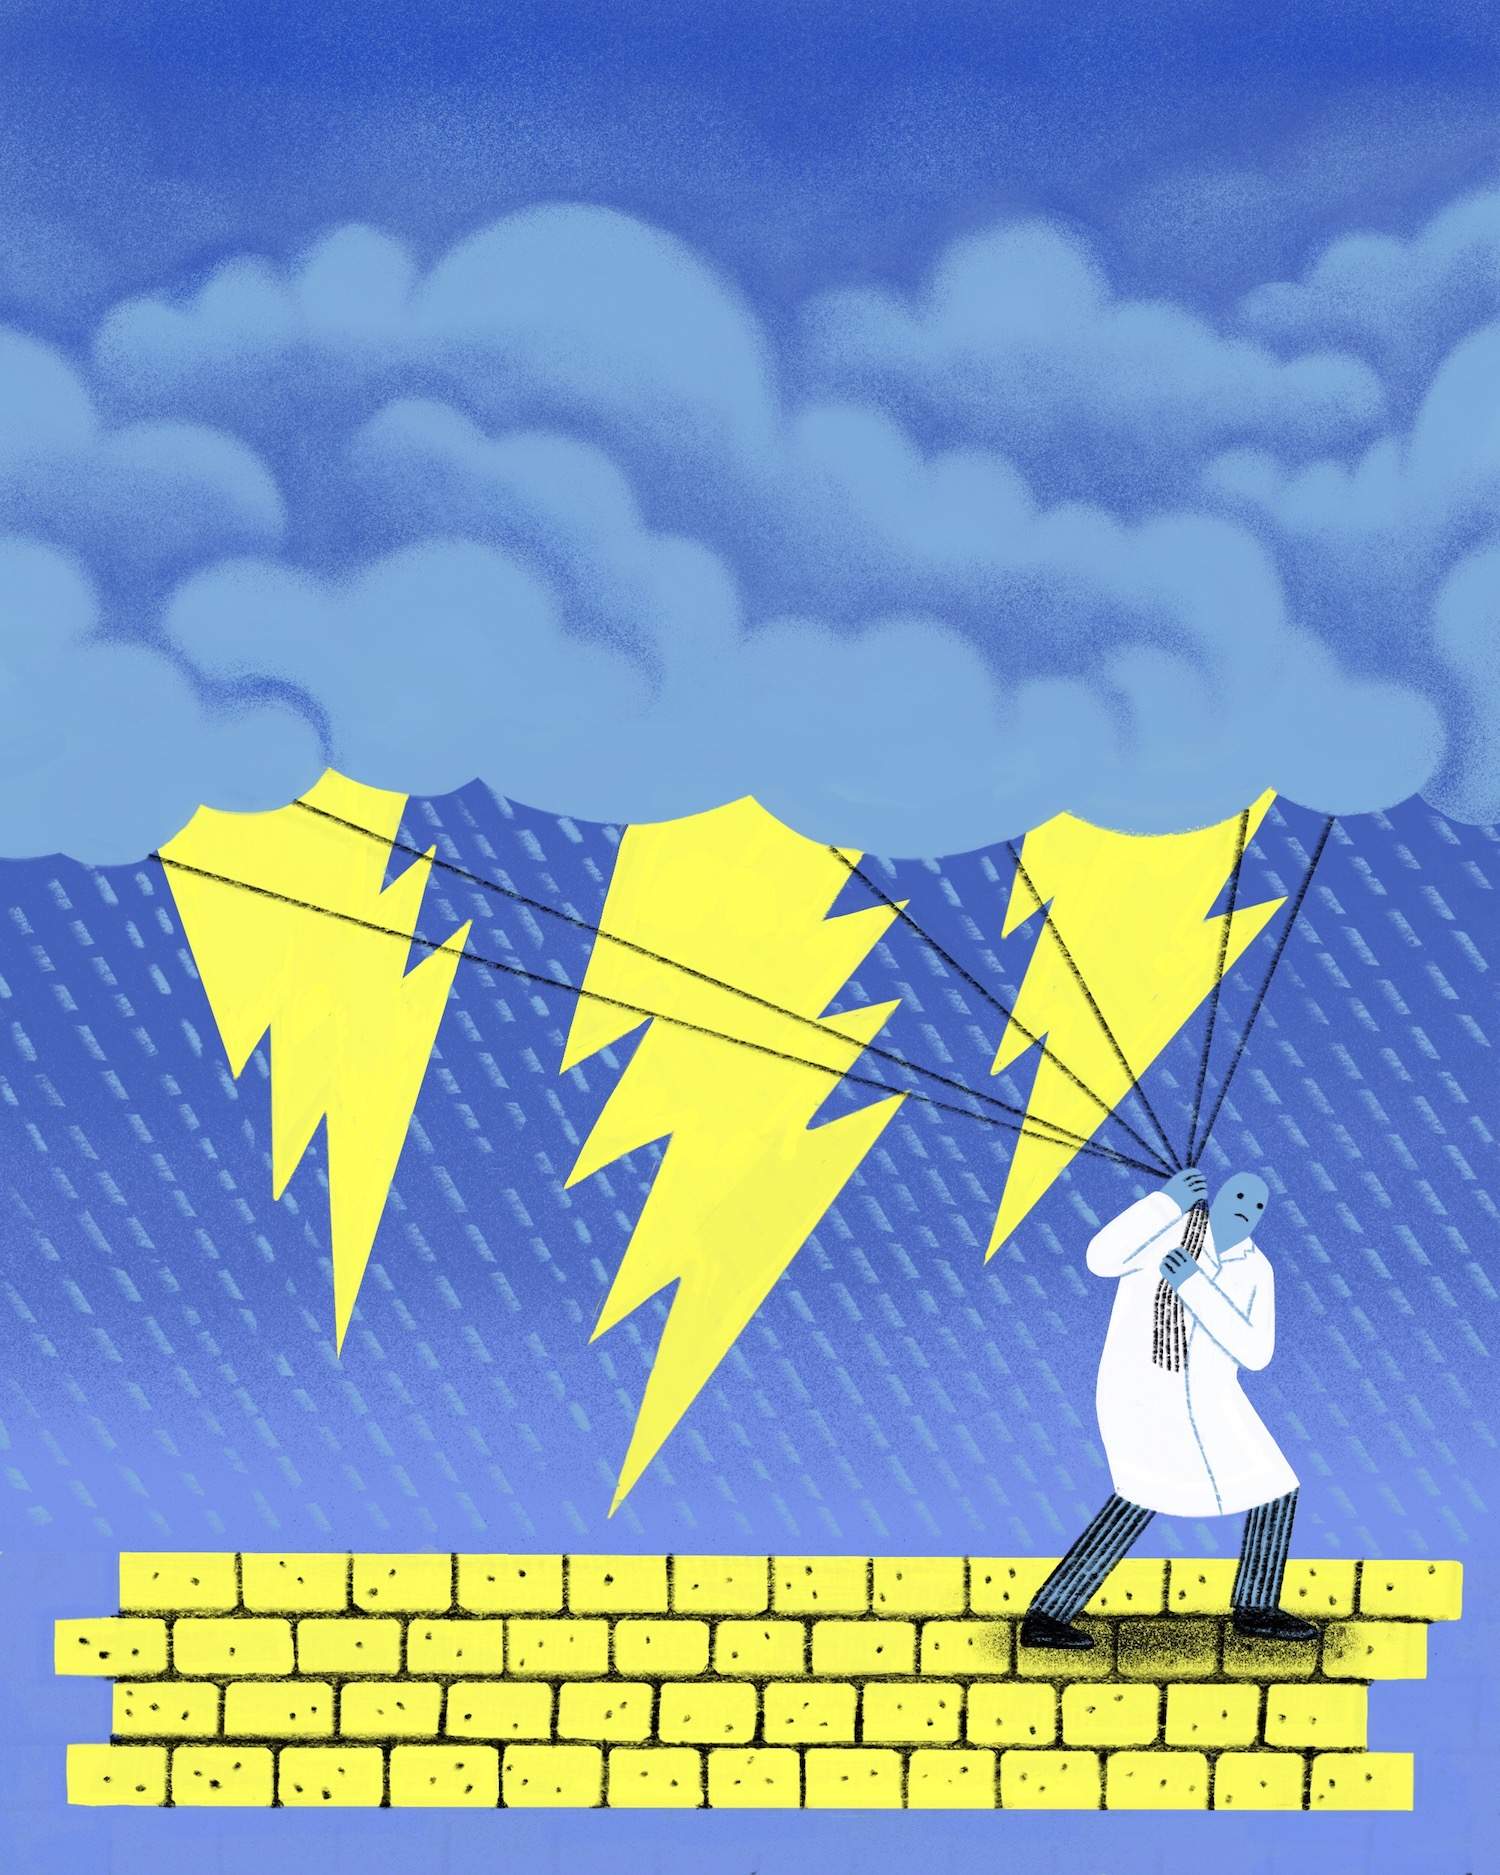 Illustration of a scientist in a lab coat pulling clouds with lightning coming out of them with pieces of rope.